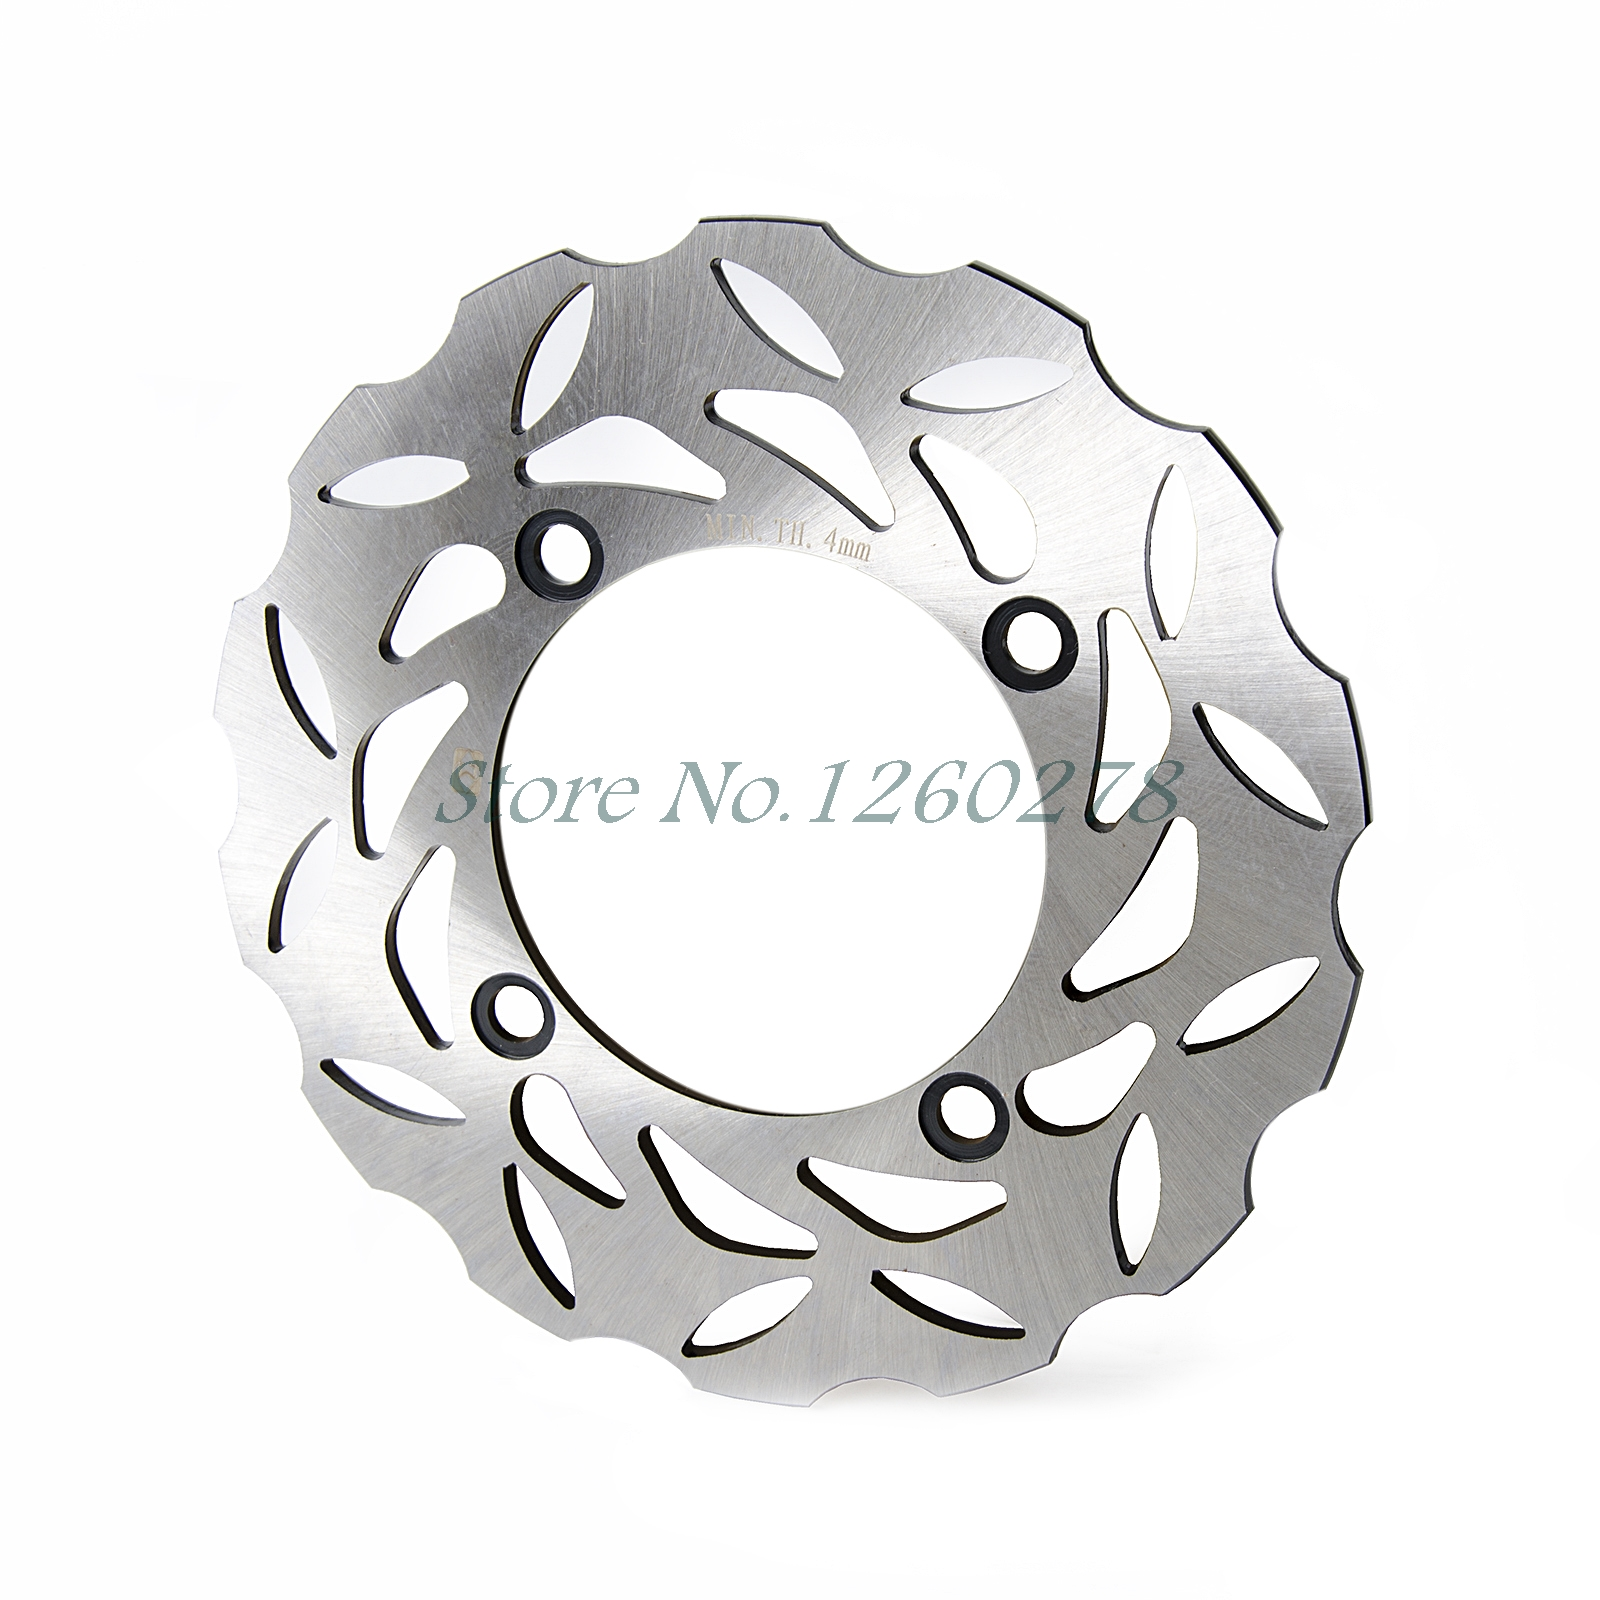 New Motorcycle Rear Brake Disc Rotor For Honda CB600F Hornet CBR600F CBR600RR CBR900RR CBR100RR CB250 VTR1000 XR650L NX650 new rear brake disc rotor racing street bike for motorcycle supermoto burgman 650 an650 2002 2003 free shipping